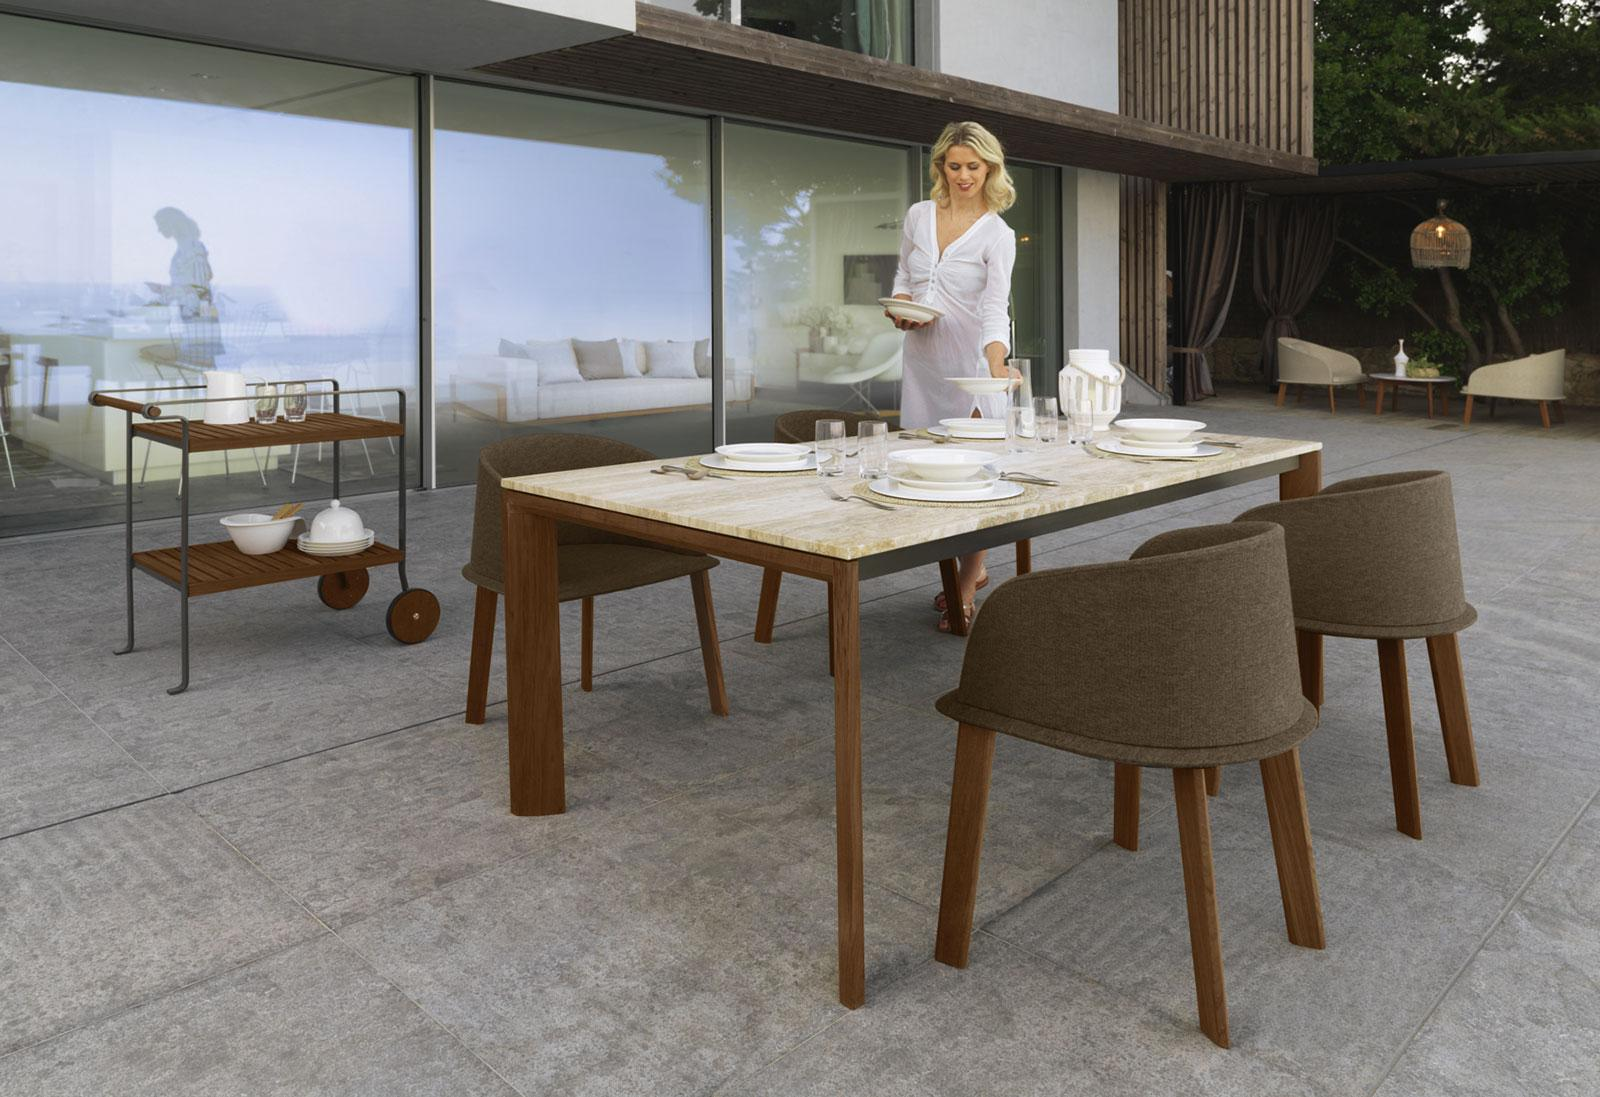 Luxury Marble Patio Table Rectangular Outdoor Made In Italy Manufacturer Design Garden Quality Retailers